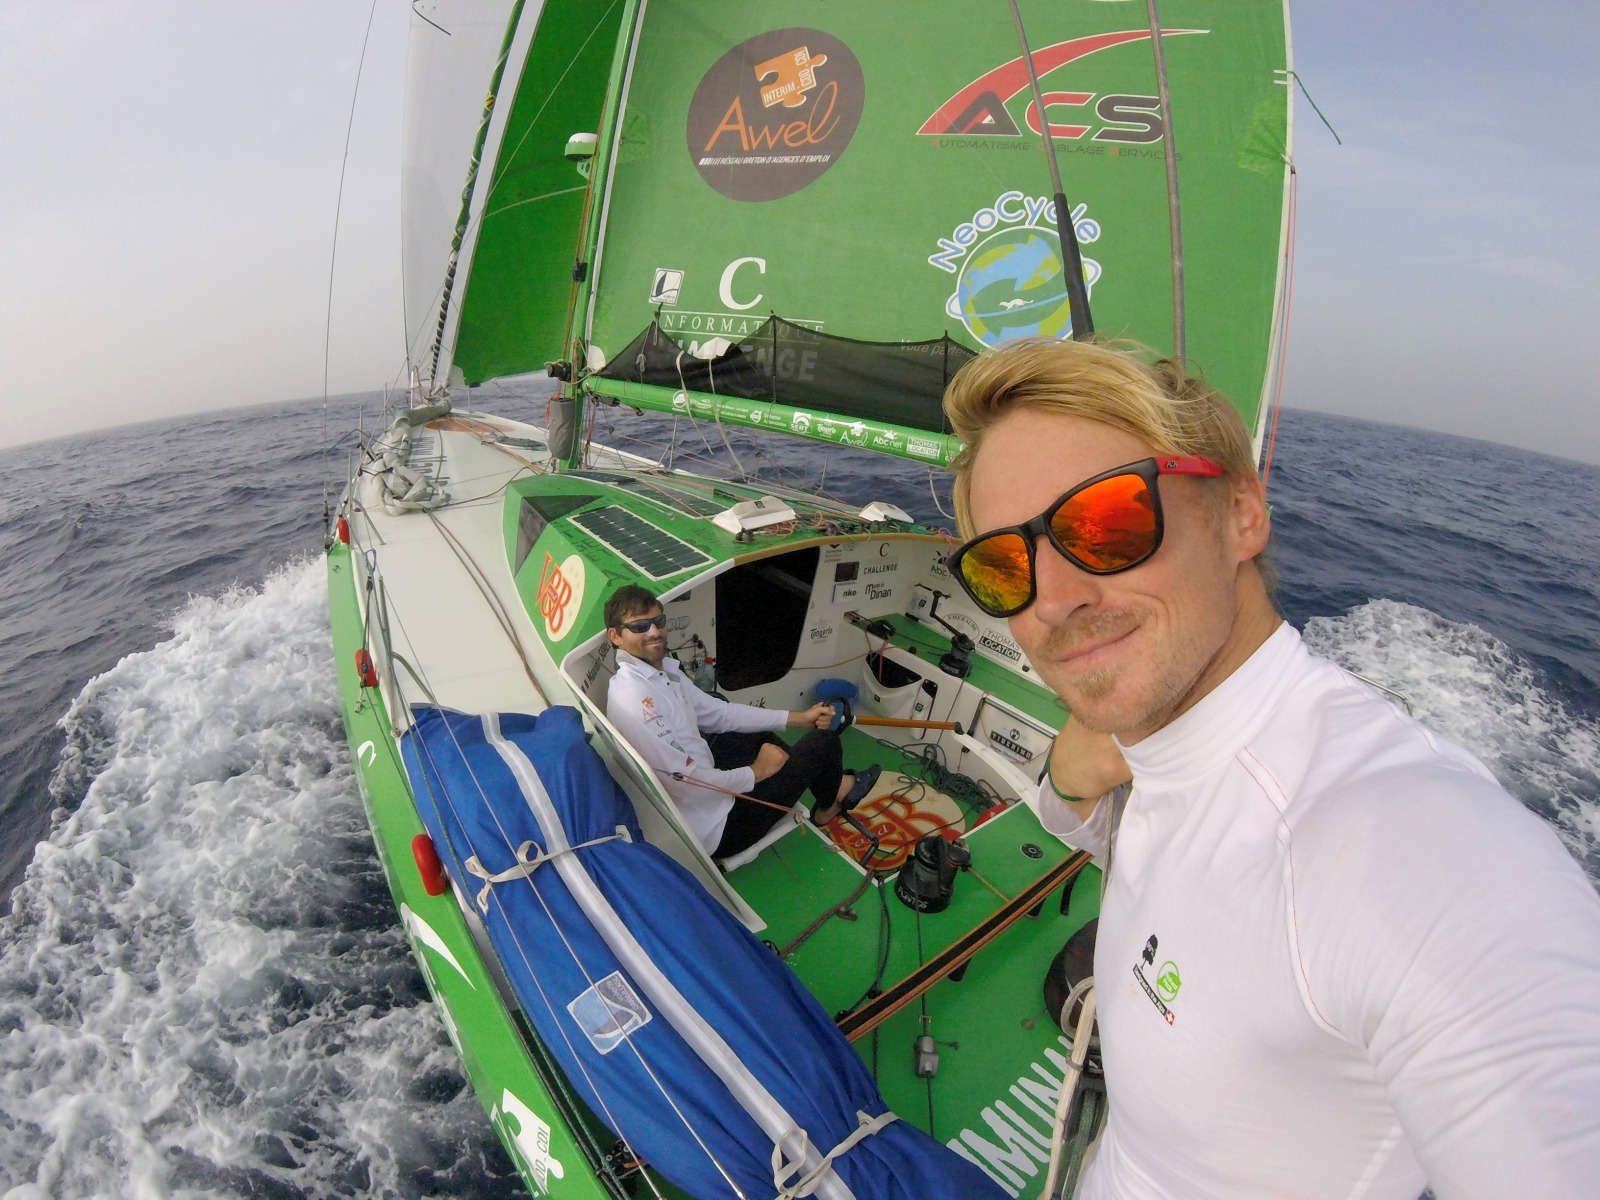 Looking for crew in a double-handed yacht race?